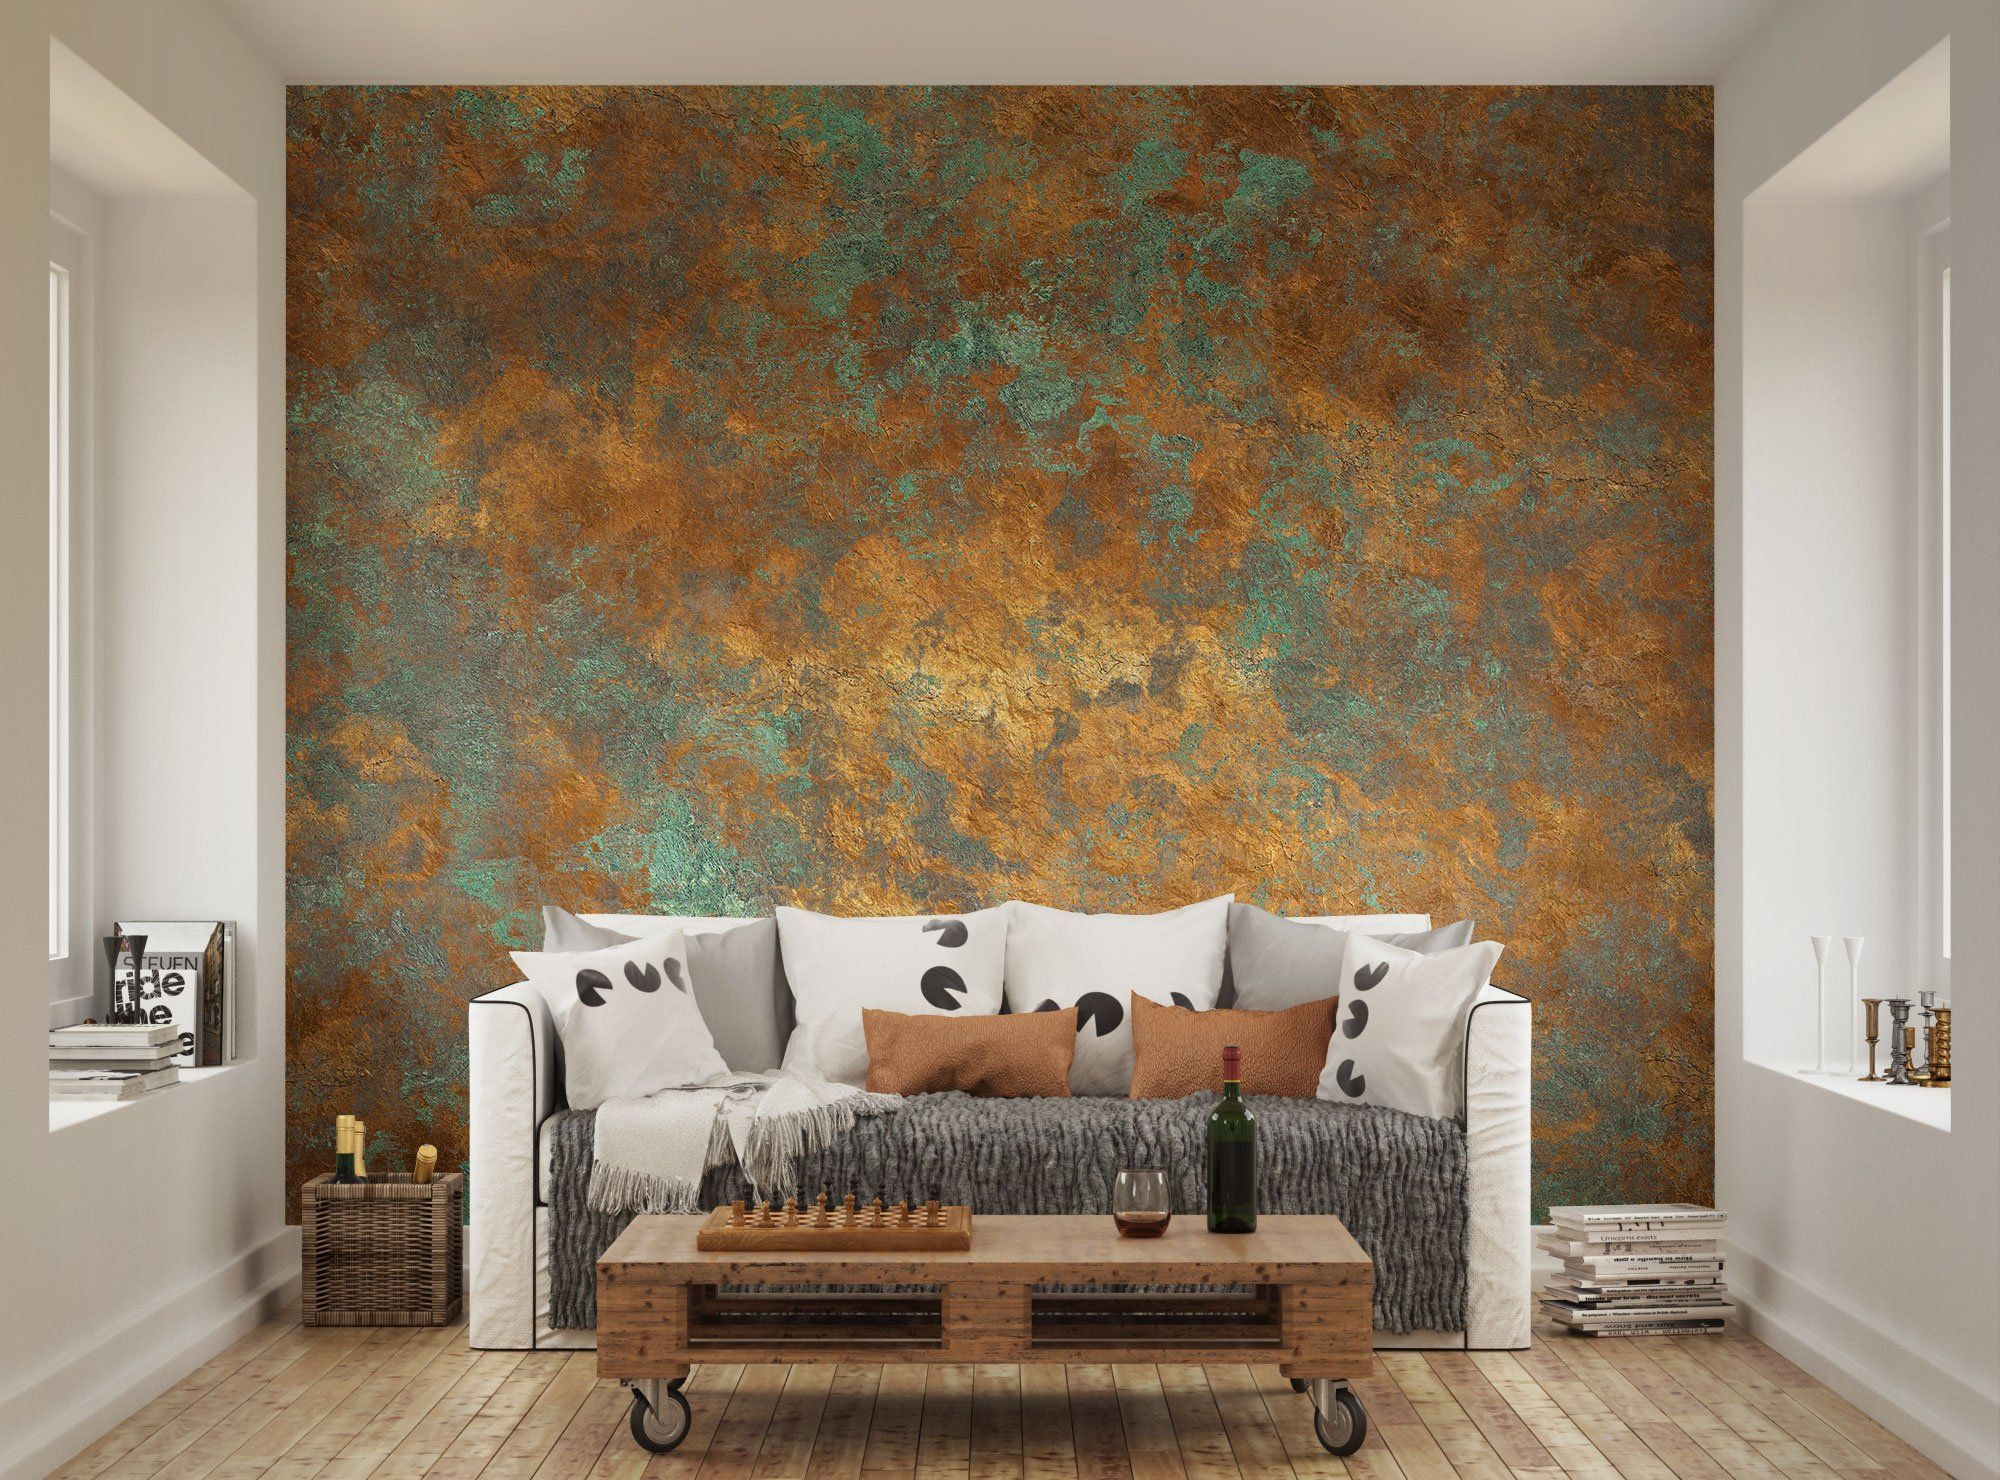 ohpopsi Vintage Aged Bronze Wall Mural: Amazon.co.uk: Kitchen